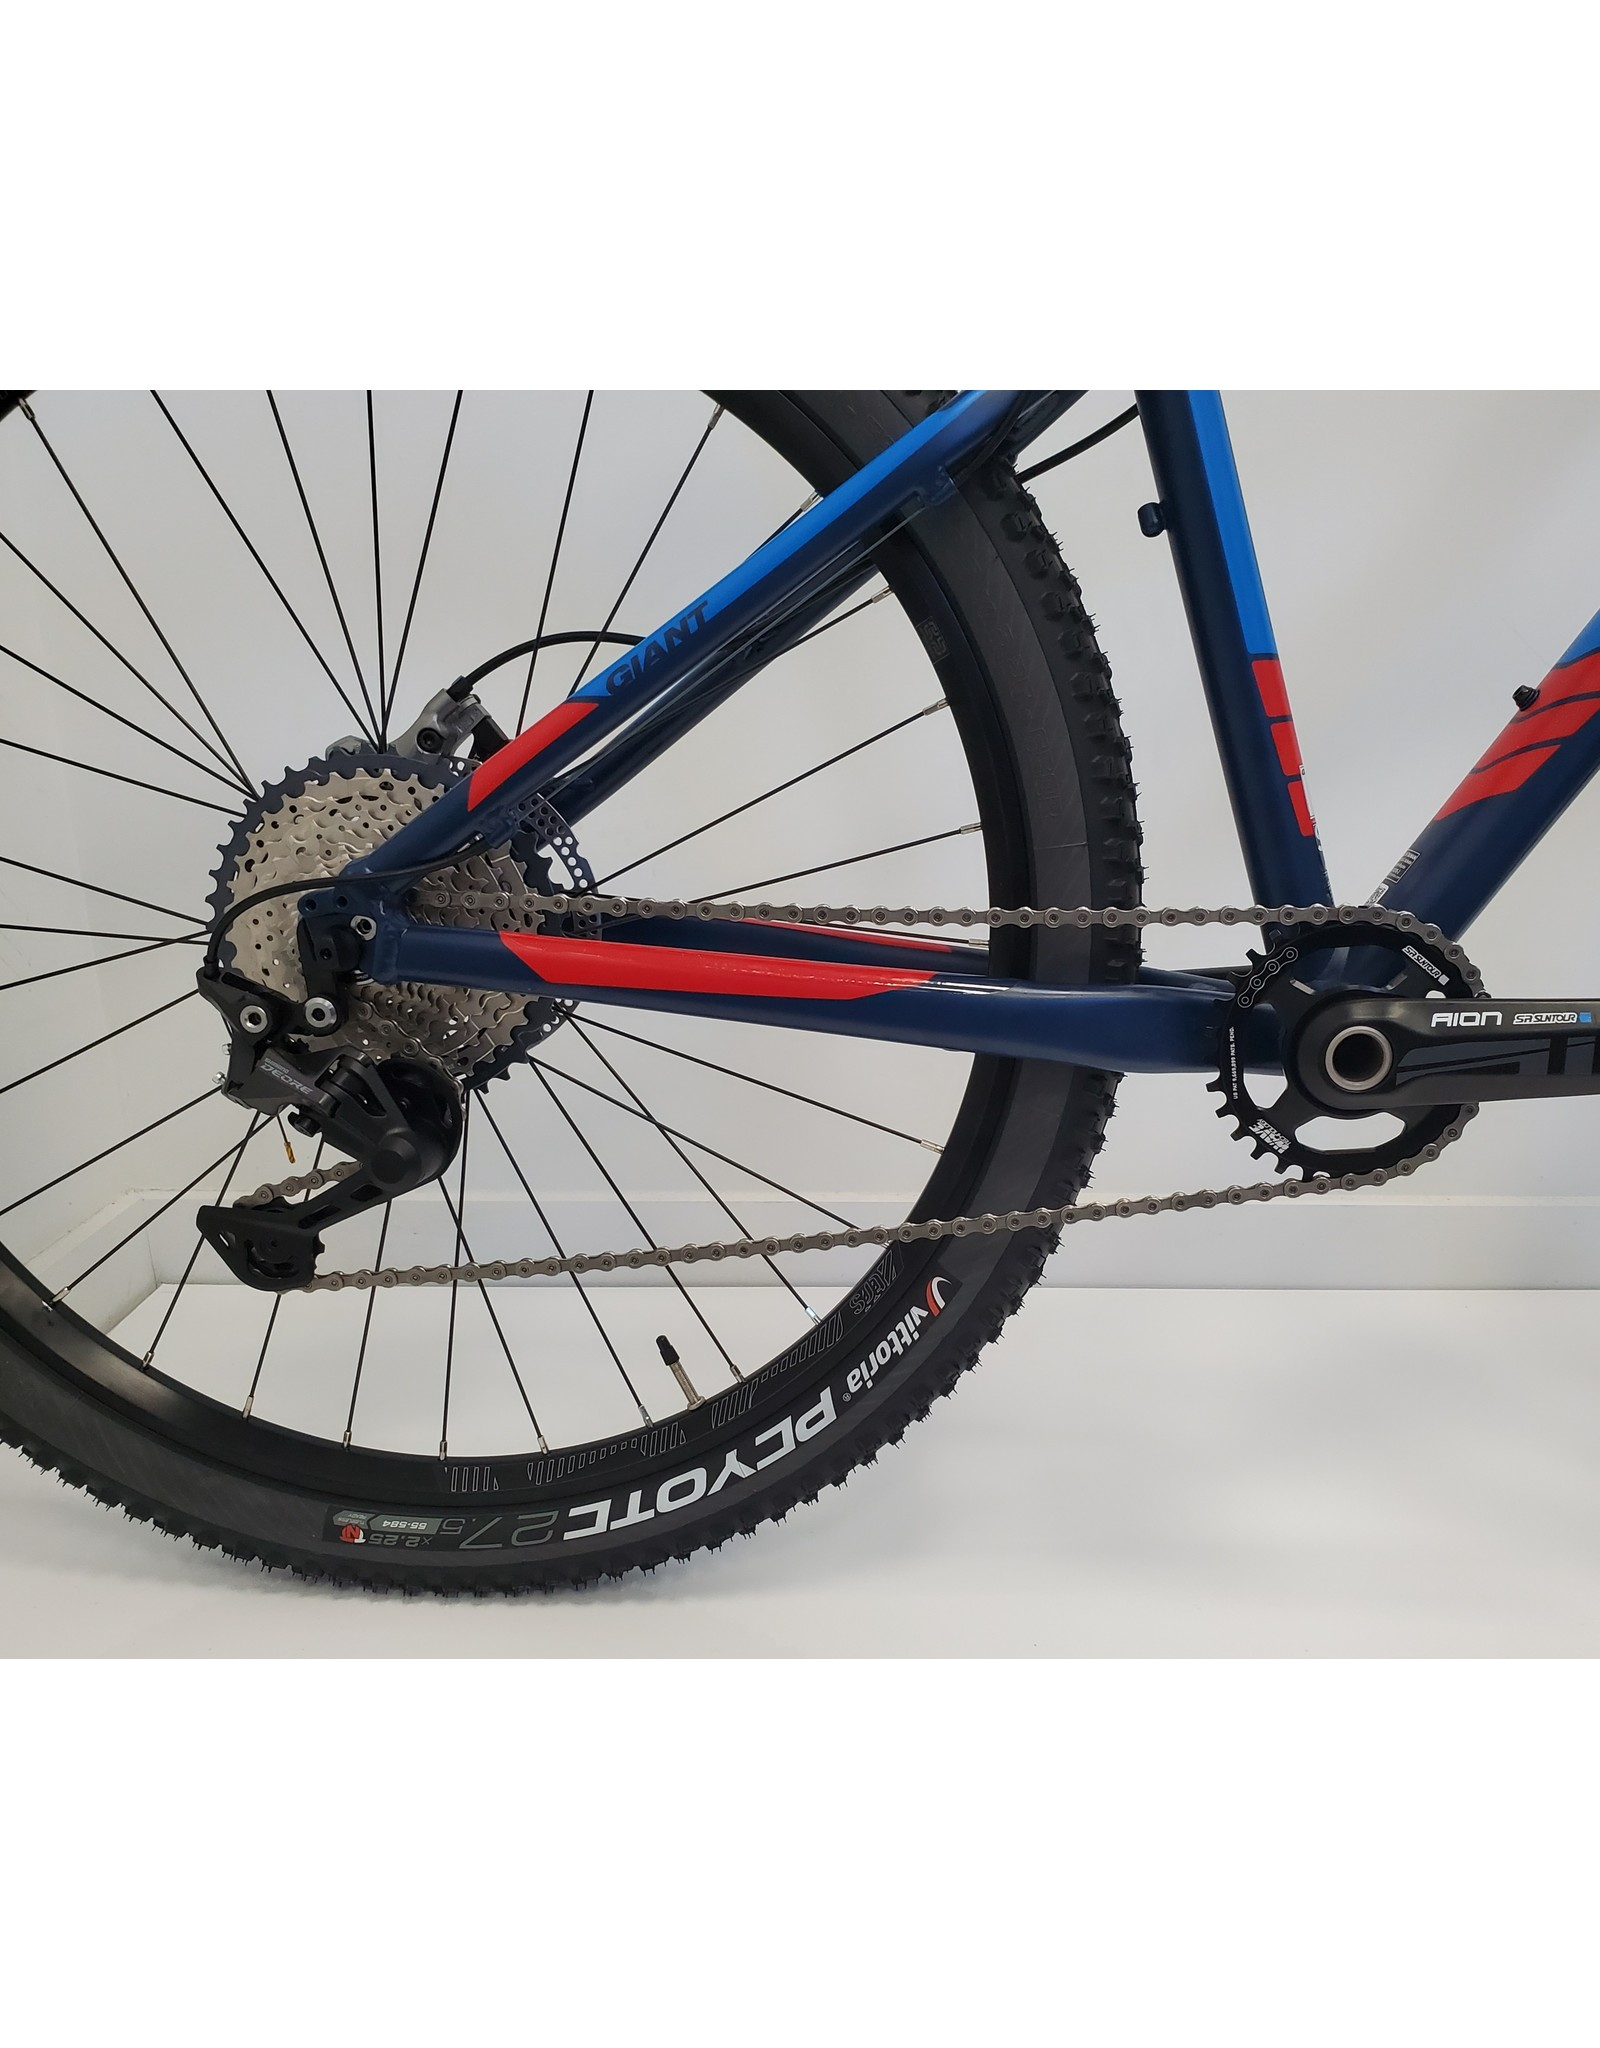 2018 Giant Talon - custom build - Small ( roues 27.5 )